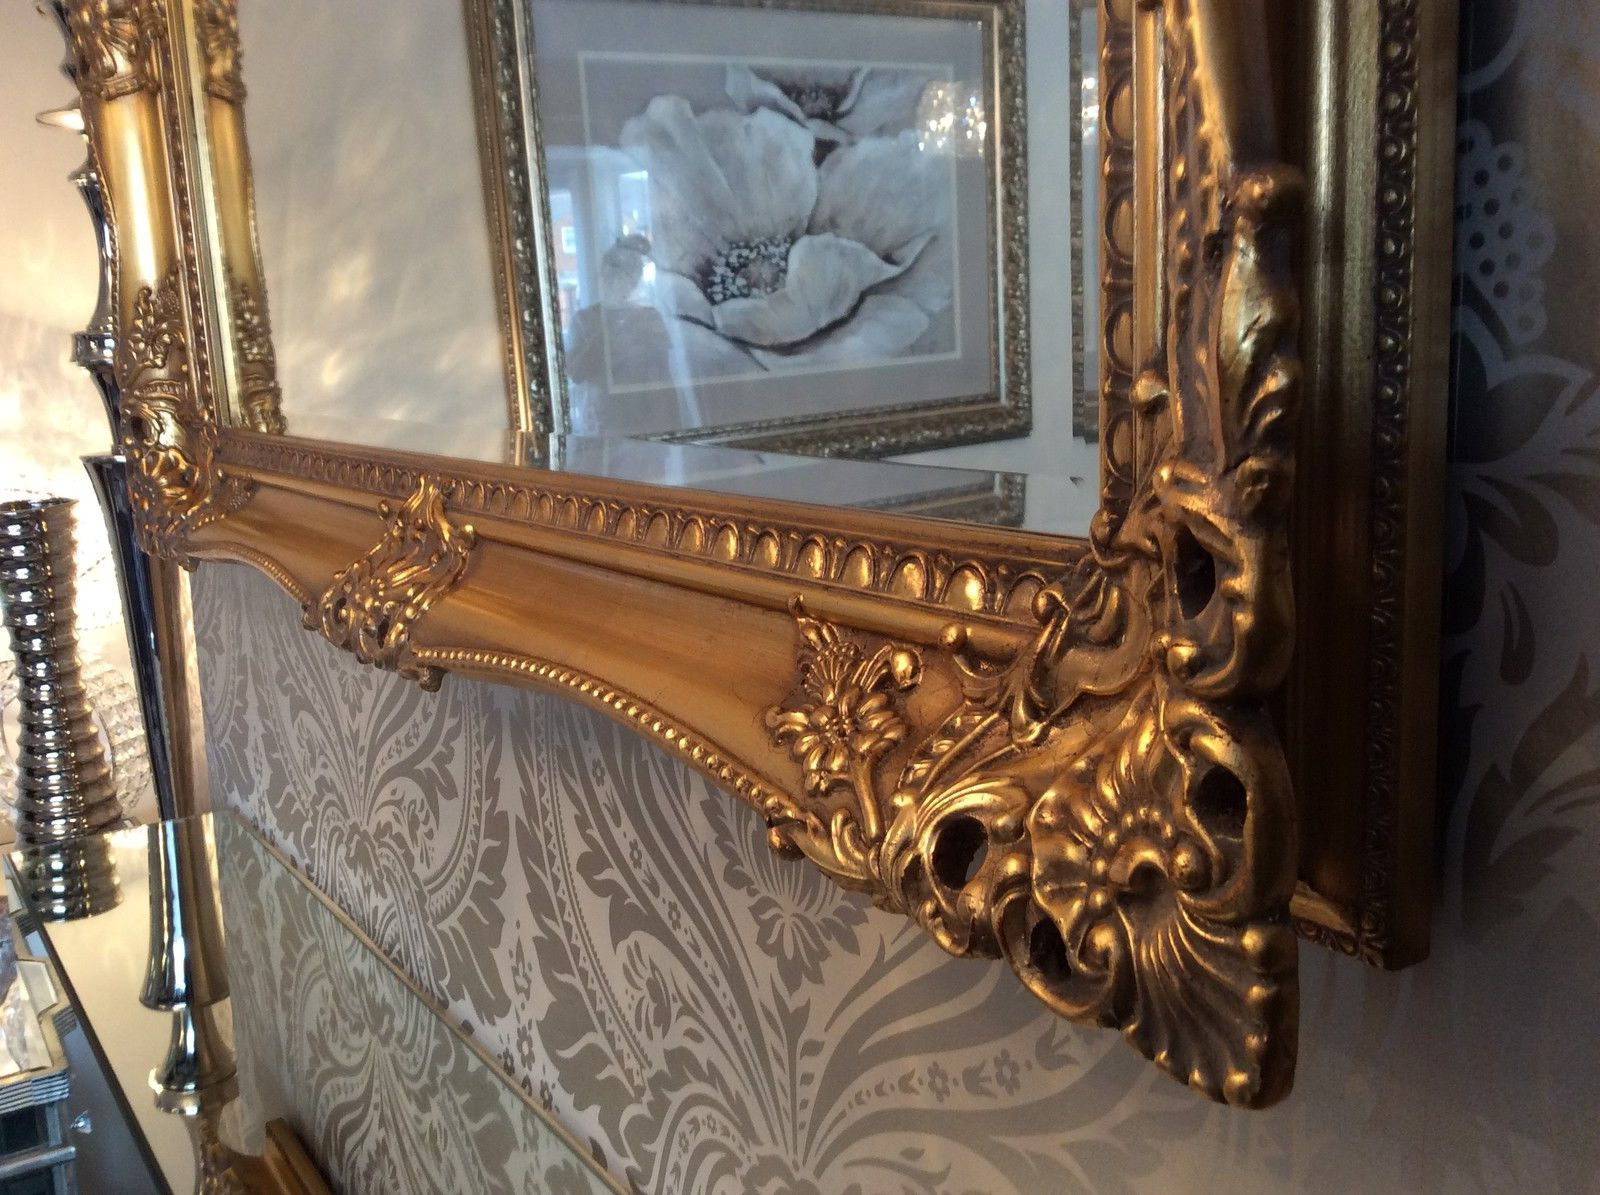 X Large Antique Gold Shabby Chic Ornate Decorative Wall Mirror Free Postage Throughout Popular Antique Gold Wall Mirrors (View 20 of 20)